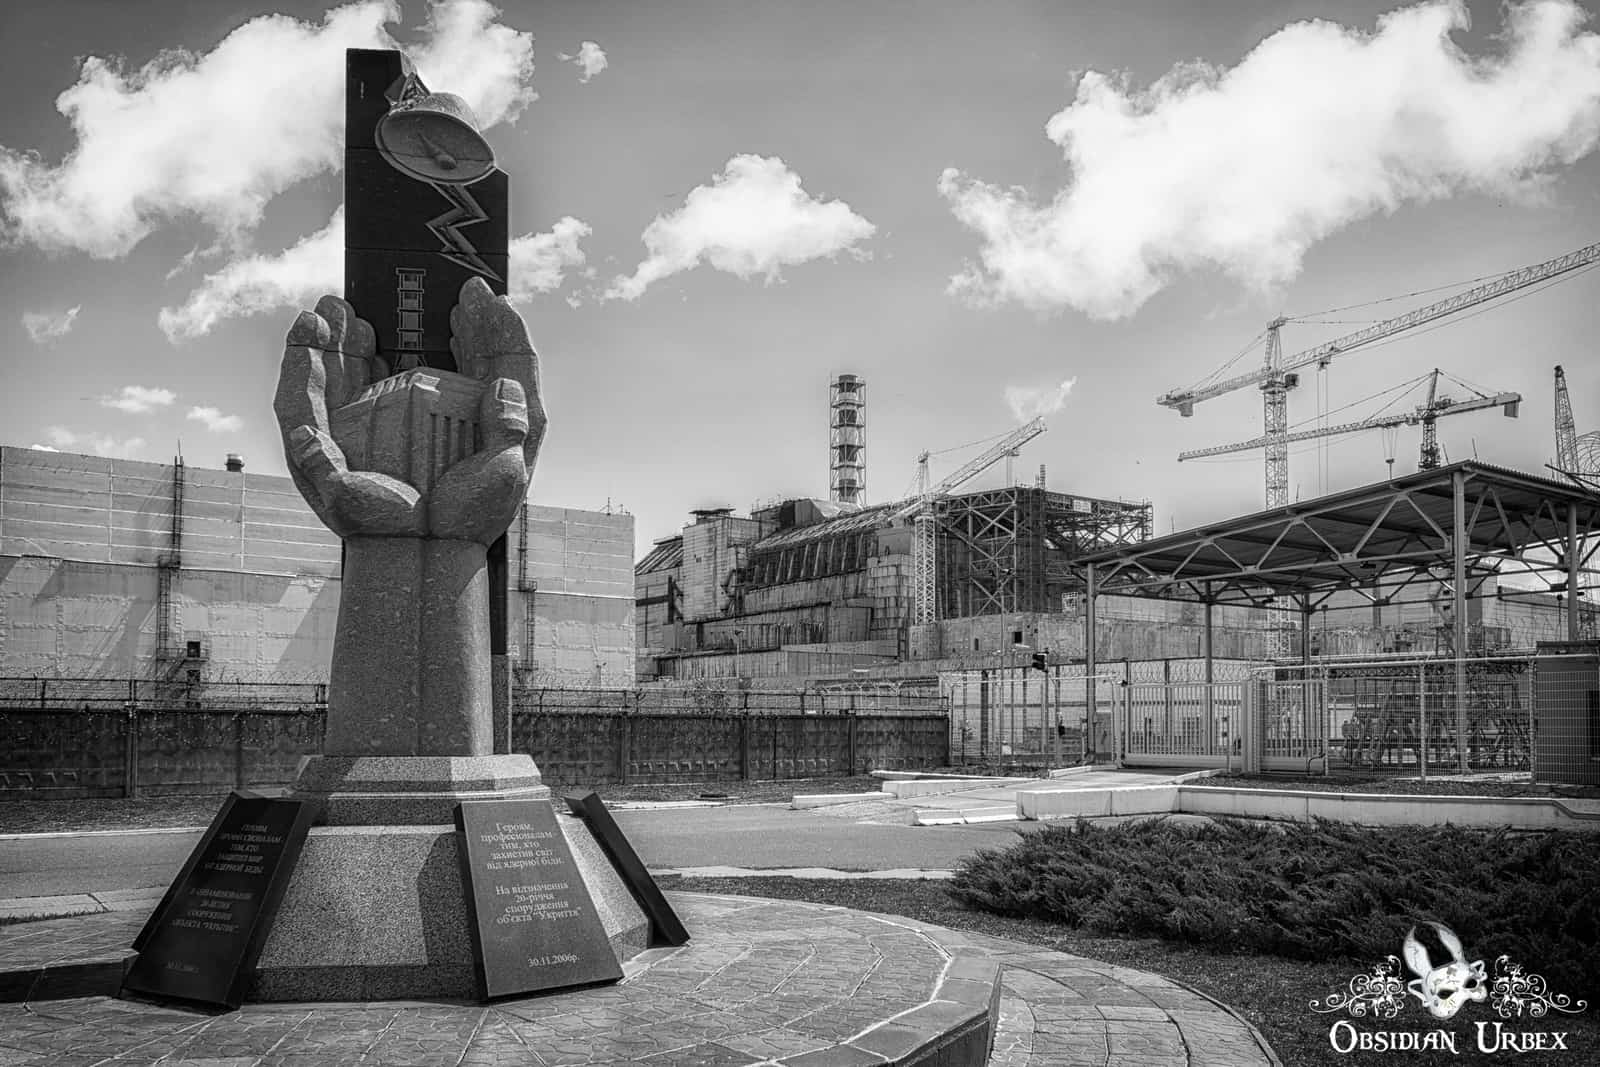 Chernobyl Nuclear Power Plant Obsidian Urbex Photography Urban Exploration Abandoned Places